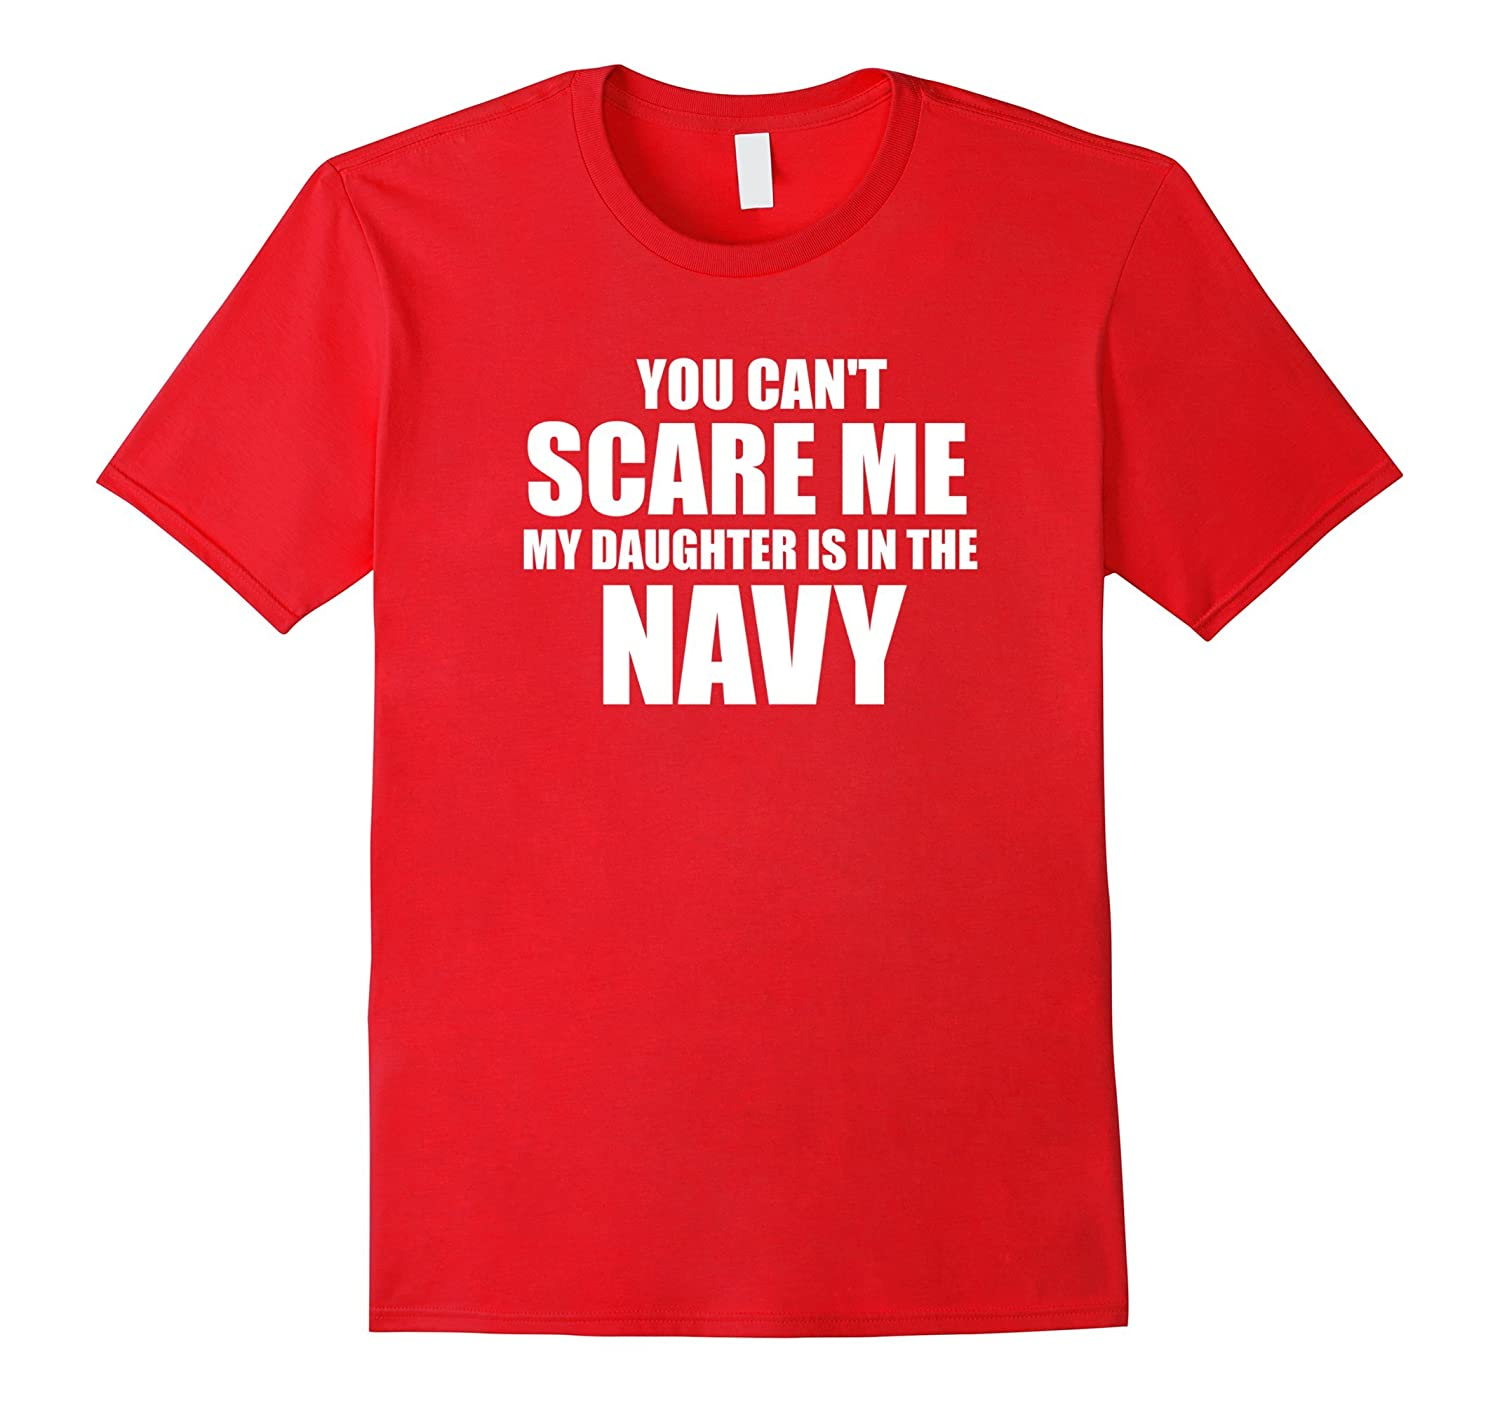 You can't scare me my daughter is in the Navy shirt